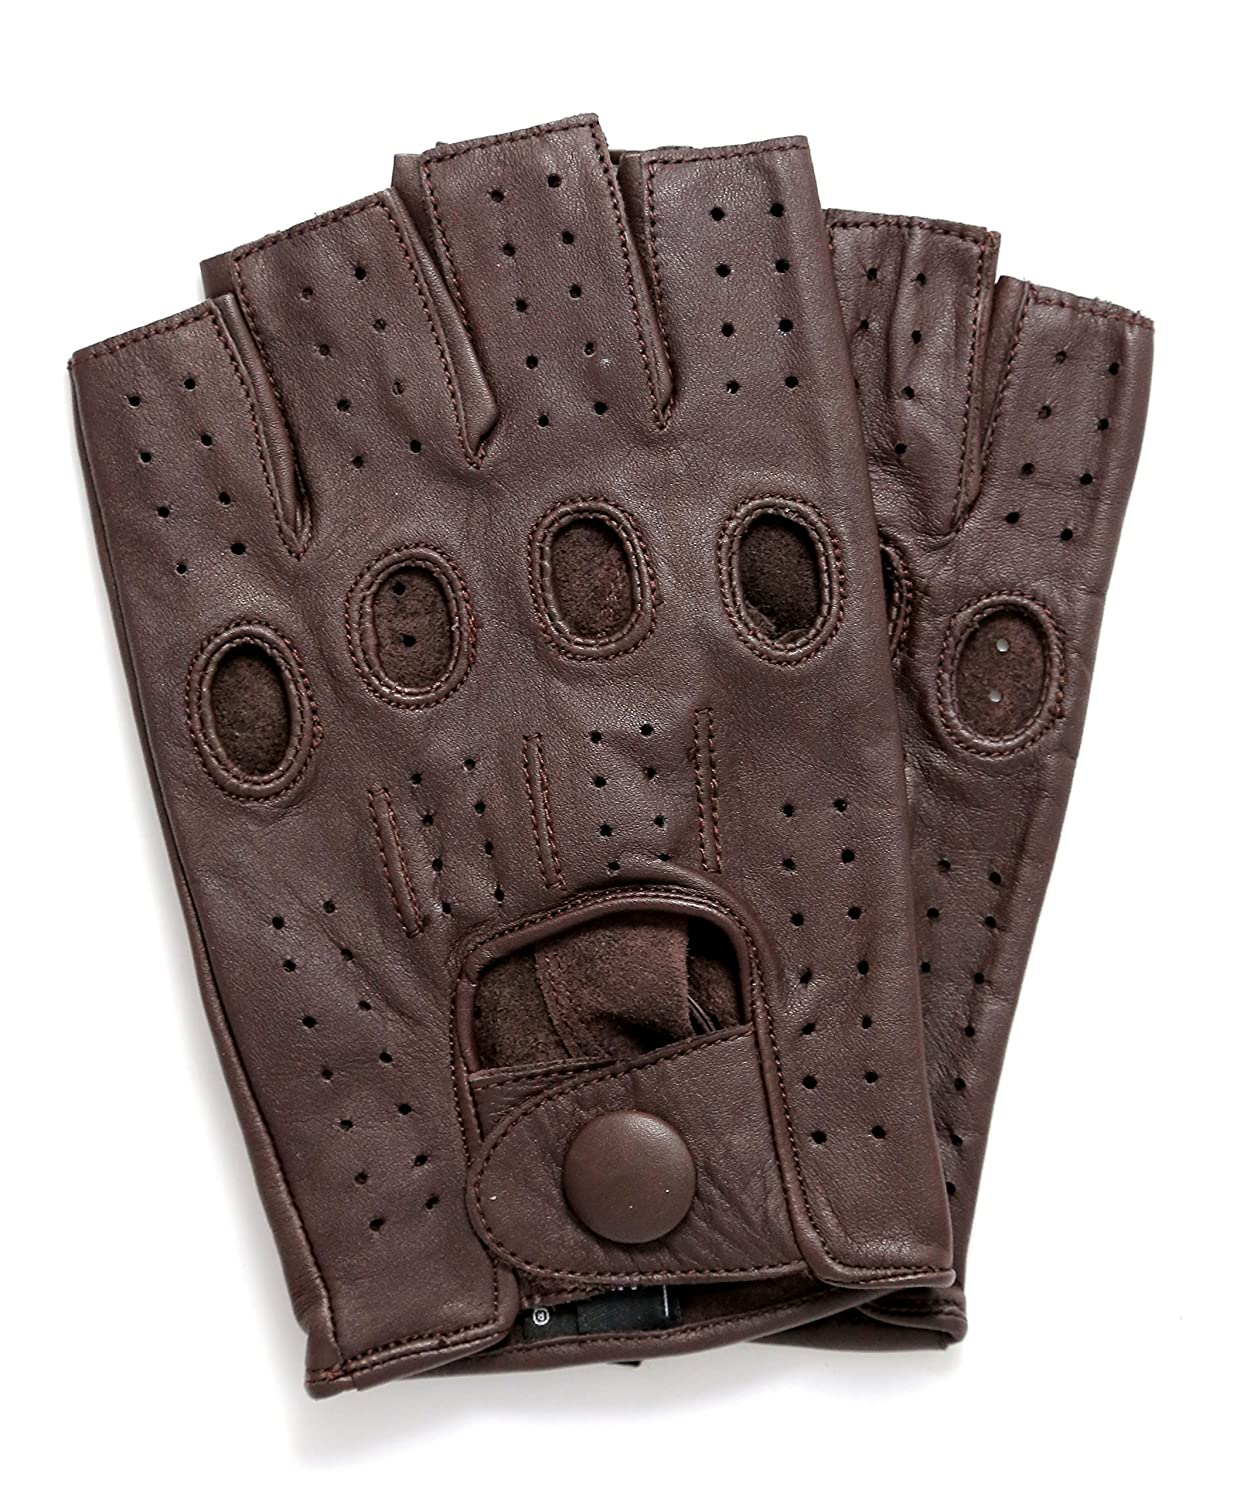 Shorty leather driving gloves fingerless - Riparo Motorsports Men S Fingerless Half Finger Driving Fitness Motorcycle Cycling Unlined Leather Gloves 2x Large Brown At Amazon Men S Clothing Store